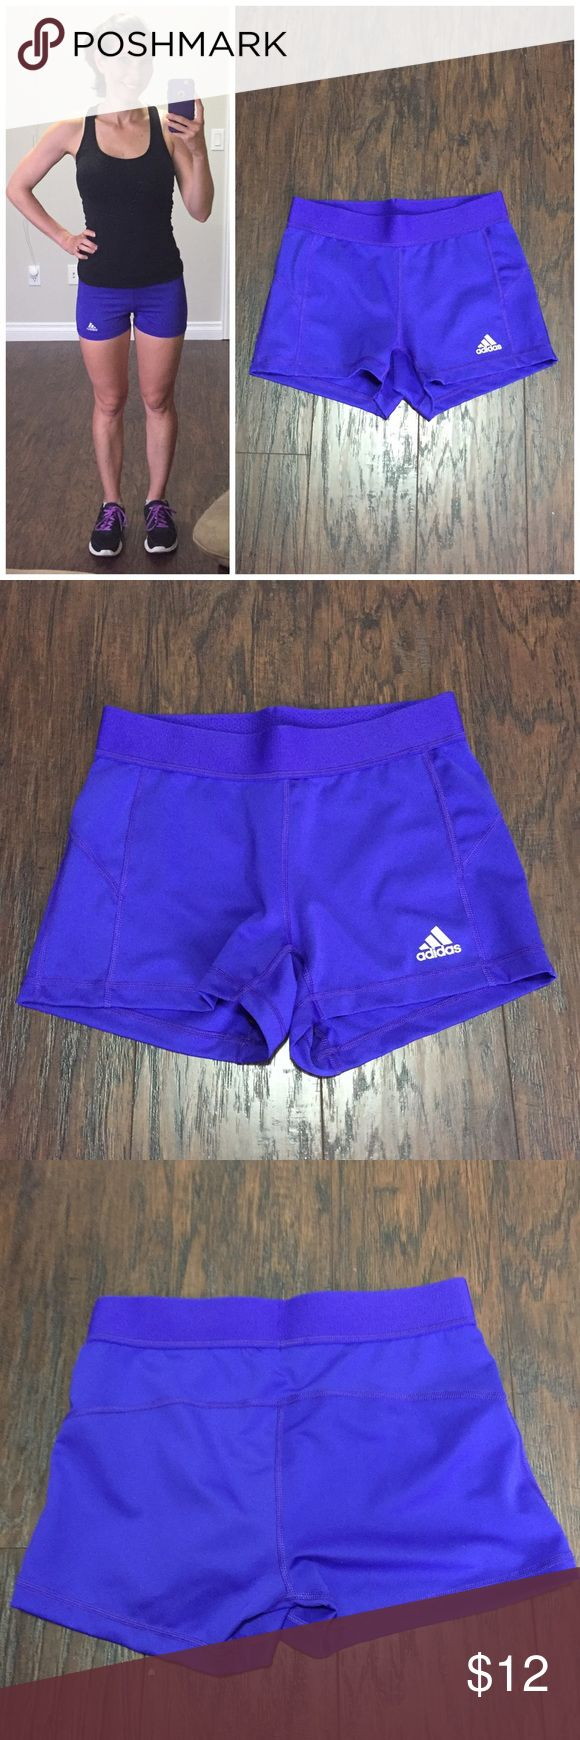 "Adidas hot purple shorts Adidas spandex ""booty"" shorts in a vivid purple color. Elastic waistband. Internal black ""underwear"" panel (I always wear underwear). Size small, waist measures 12.5"" unstretched. Inseam is 3"". These shorts sit slightly higher on the waist than the black Nike Pro Combat shorts listed, for comparison sake. adidas Shorts"